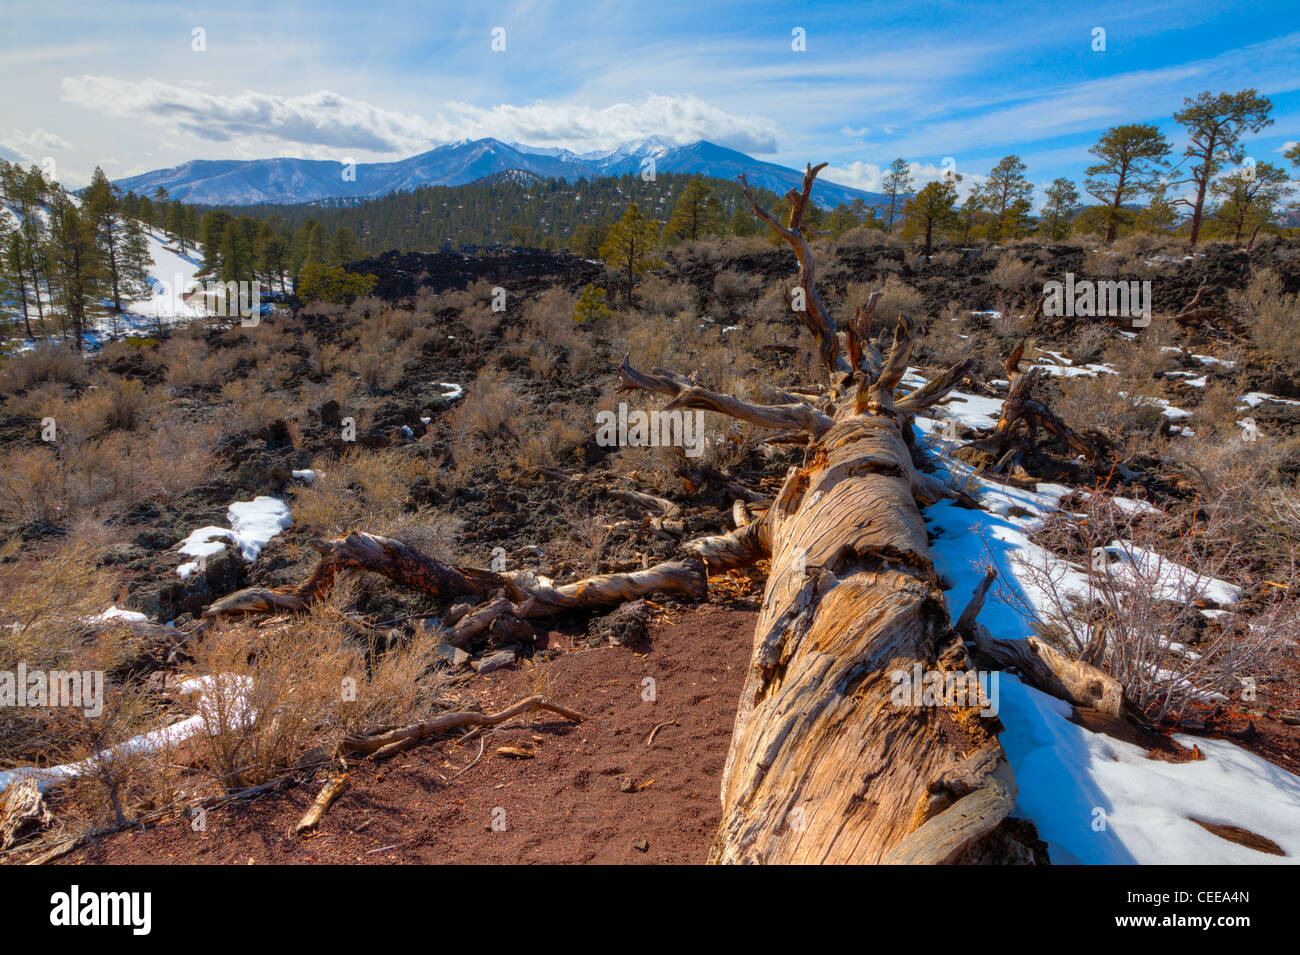 Lava field at Sunset Crater in Flagstaff, Arizona - Stock Image